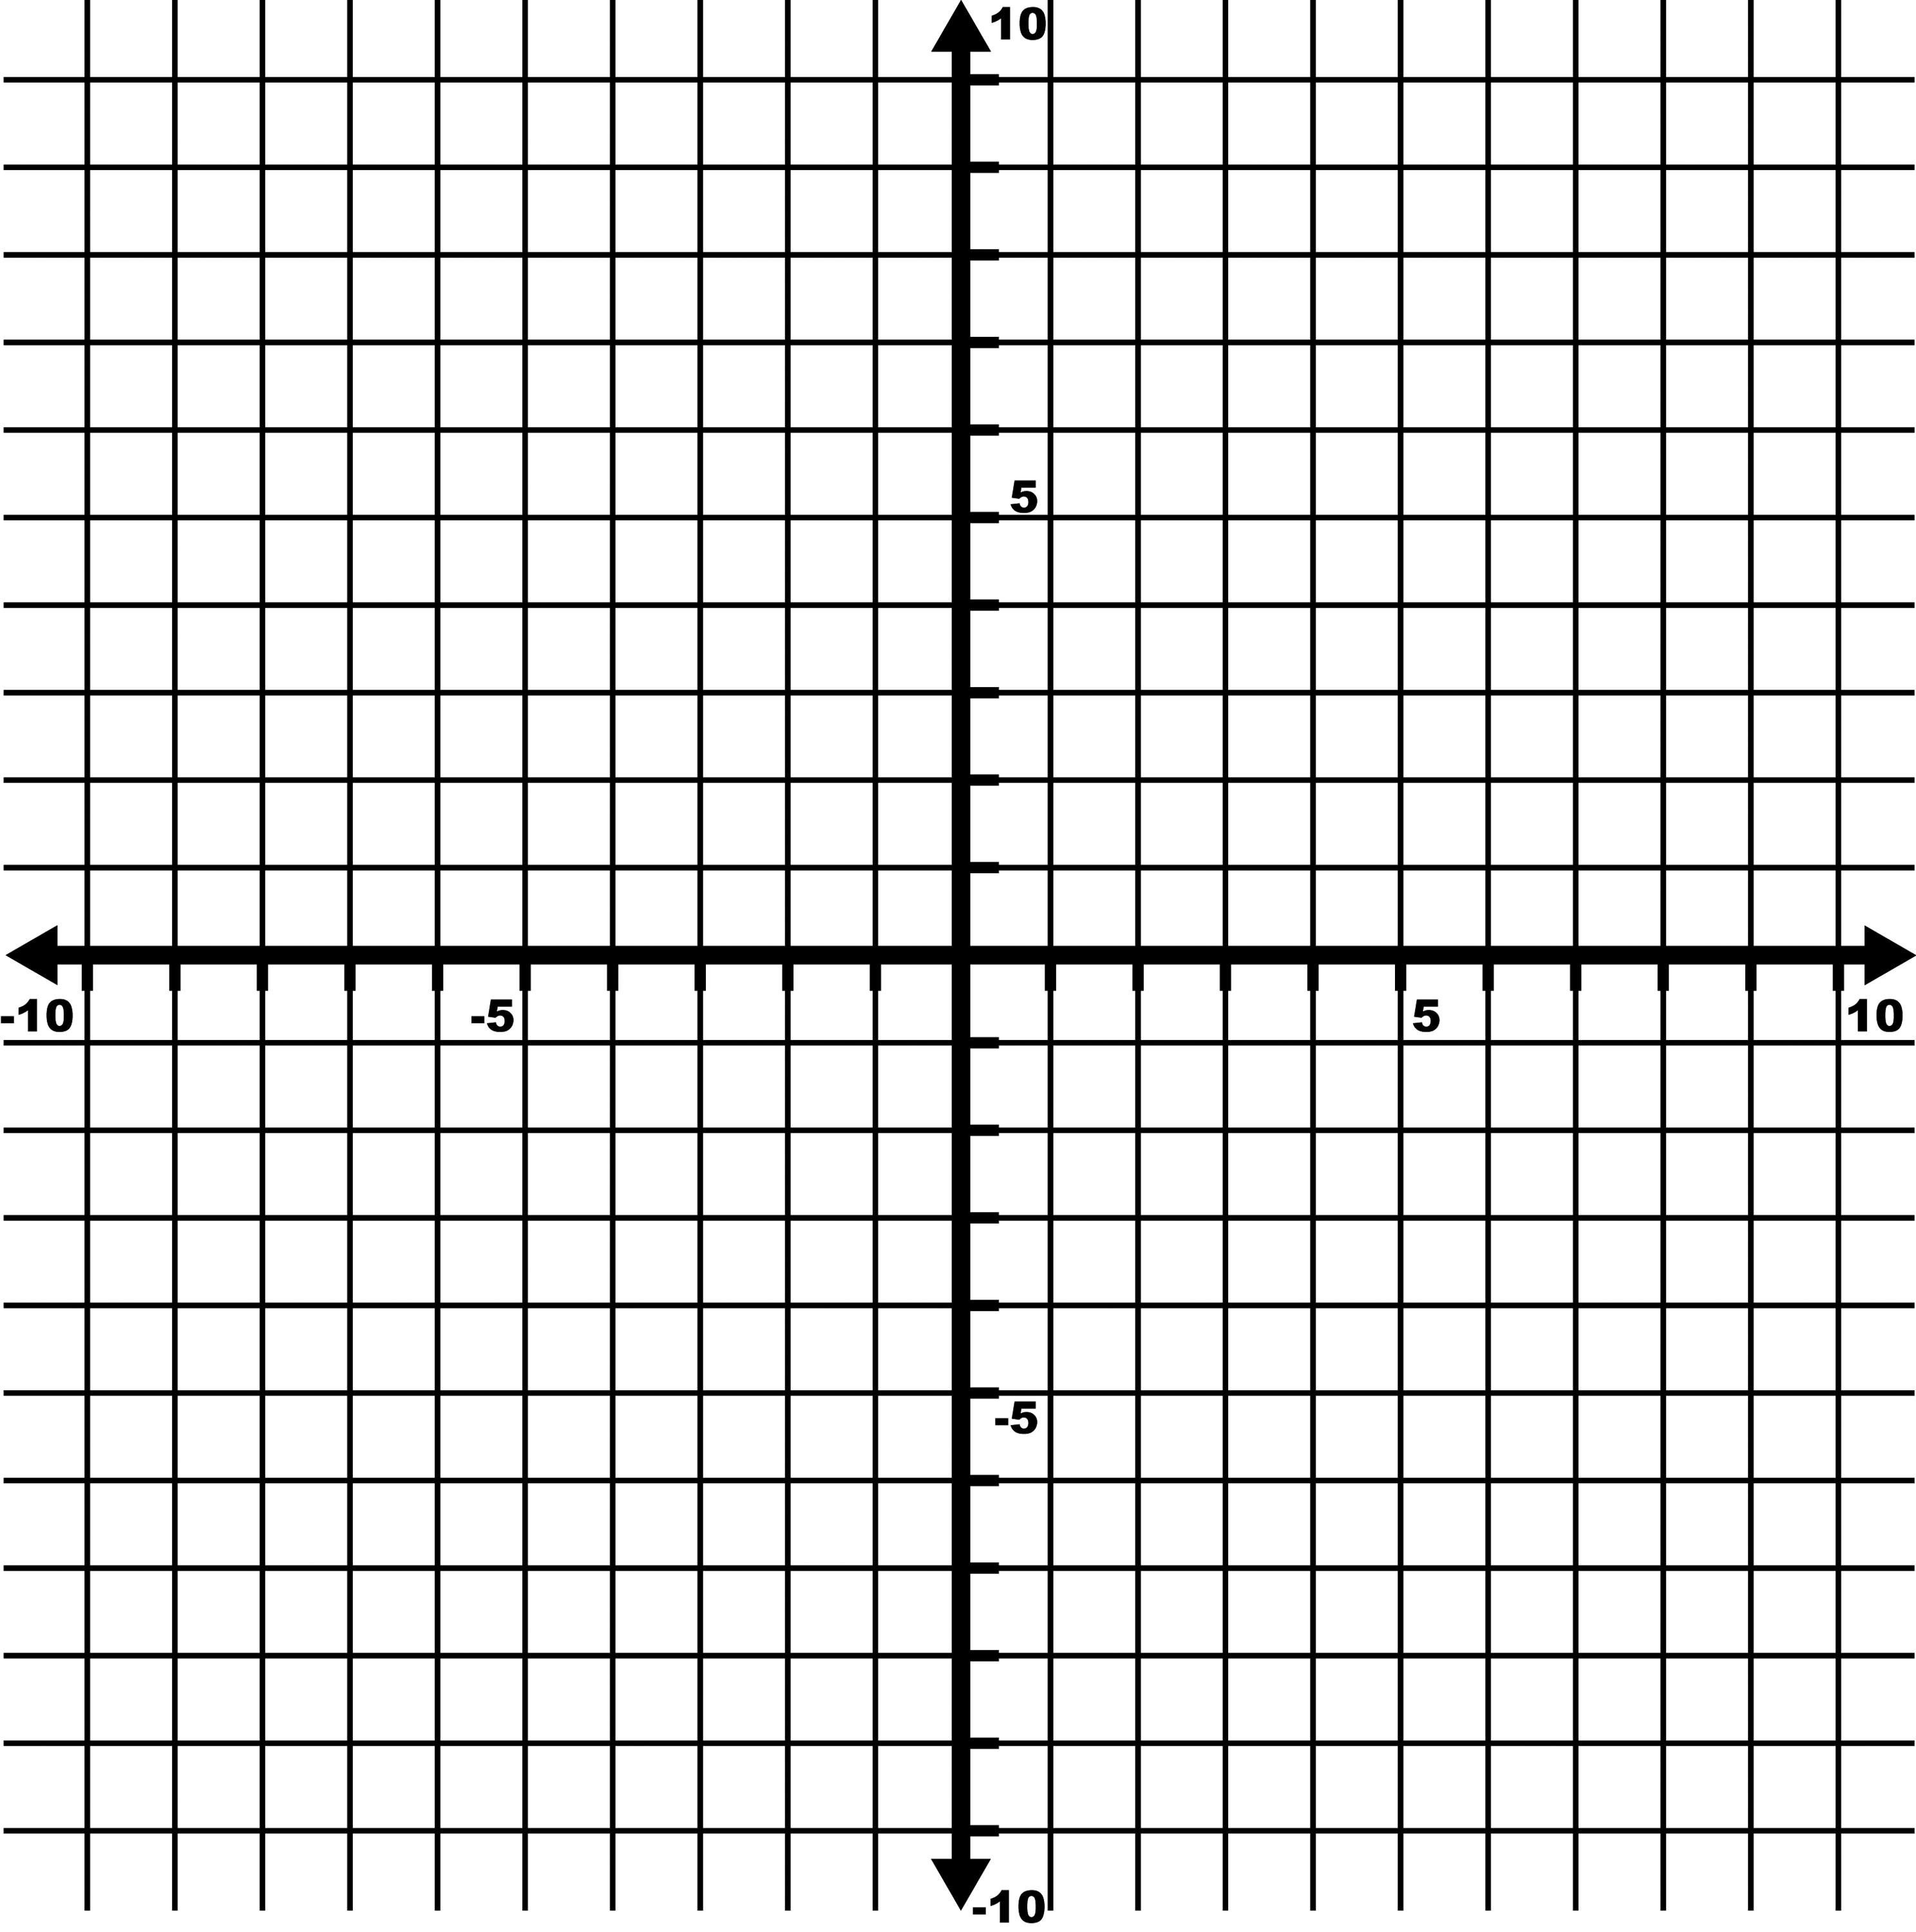 -10 To 10 Coordinate Grid With Increments Labeled By 5s